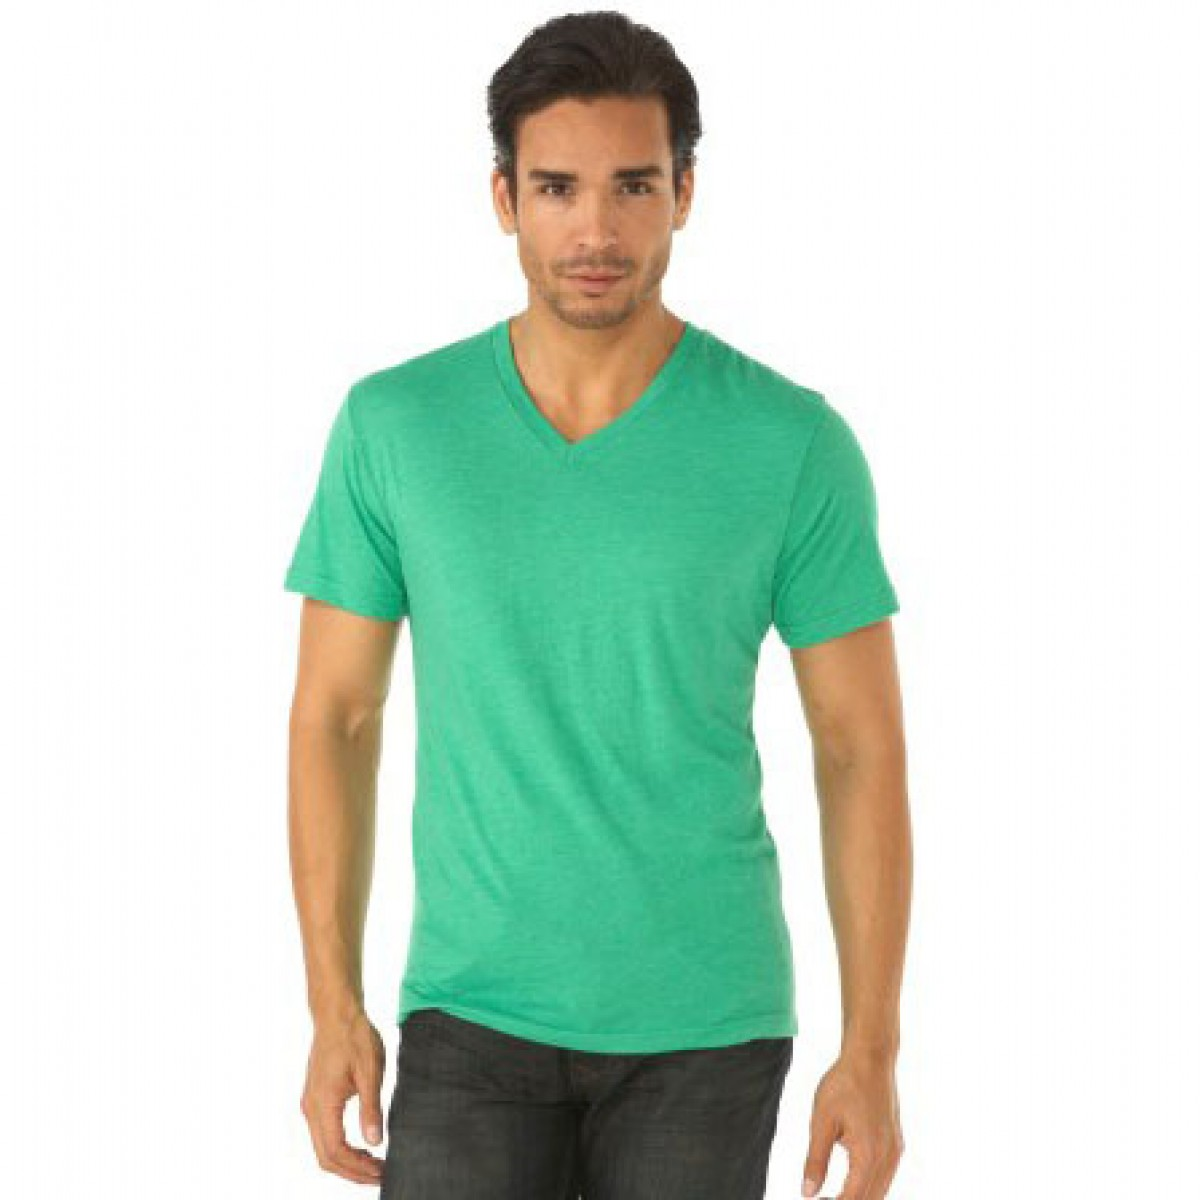 Browse the selection of v neck t shirts for men at 440v.cf and receive free shipping.